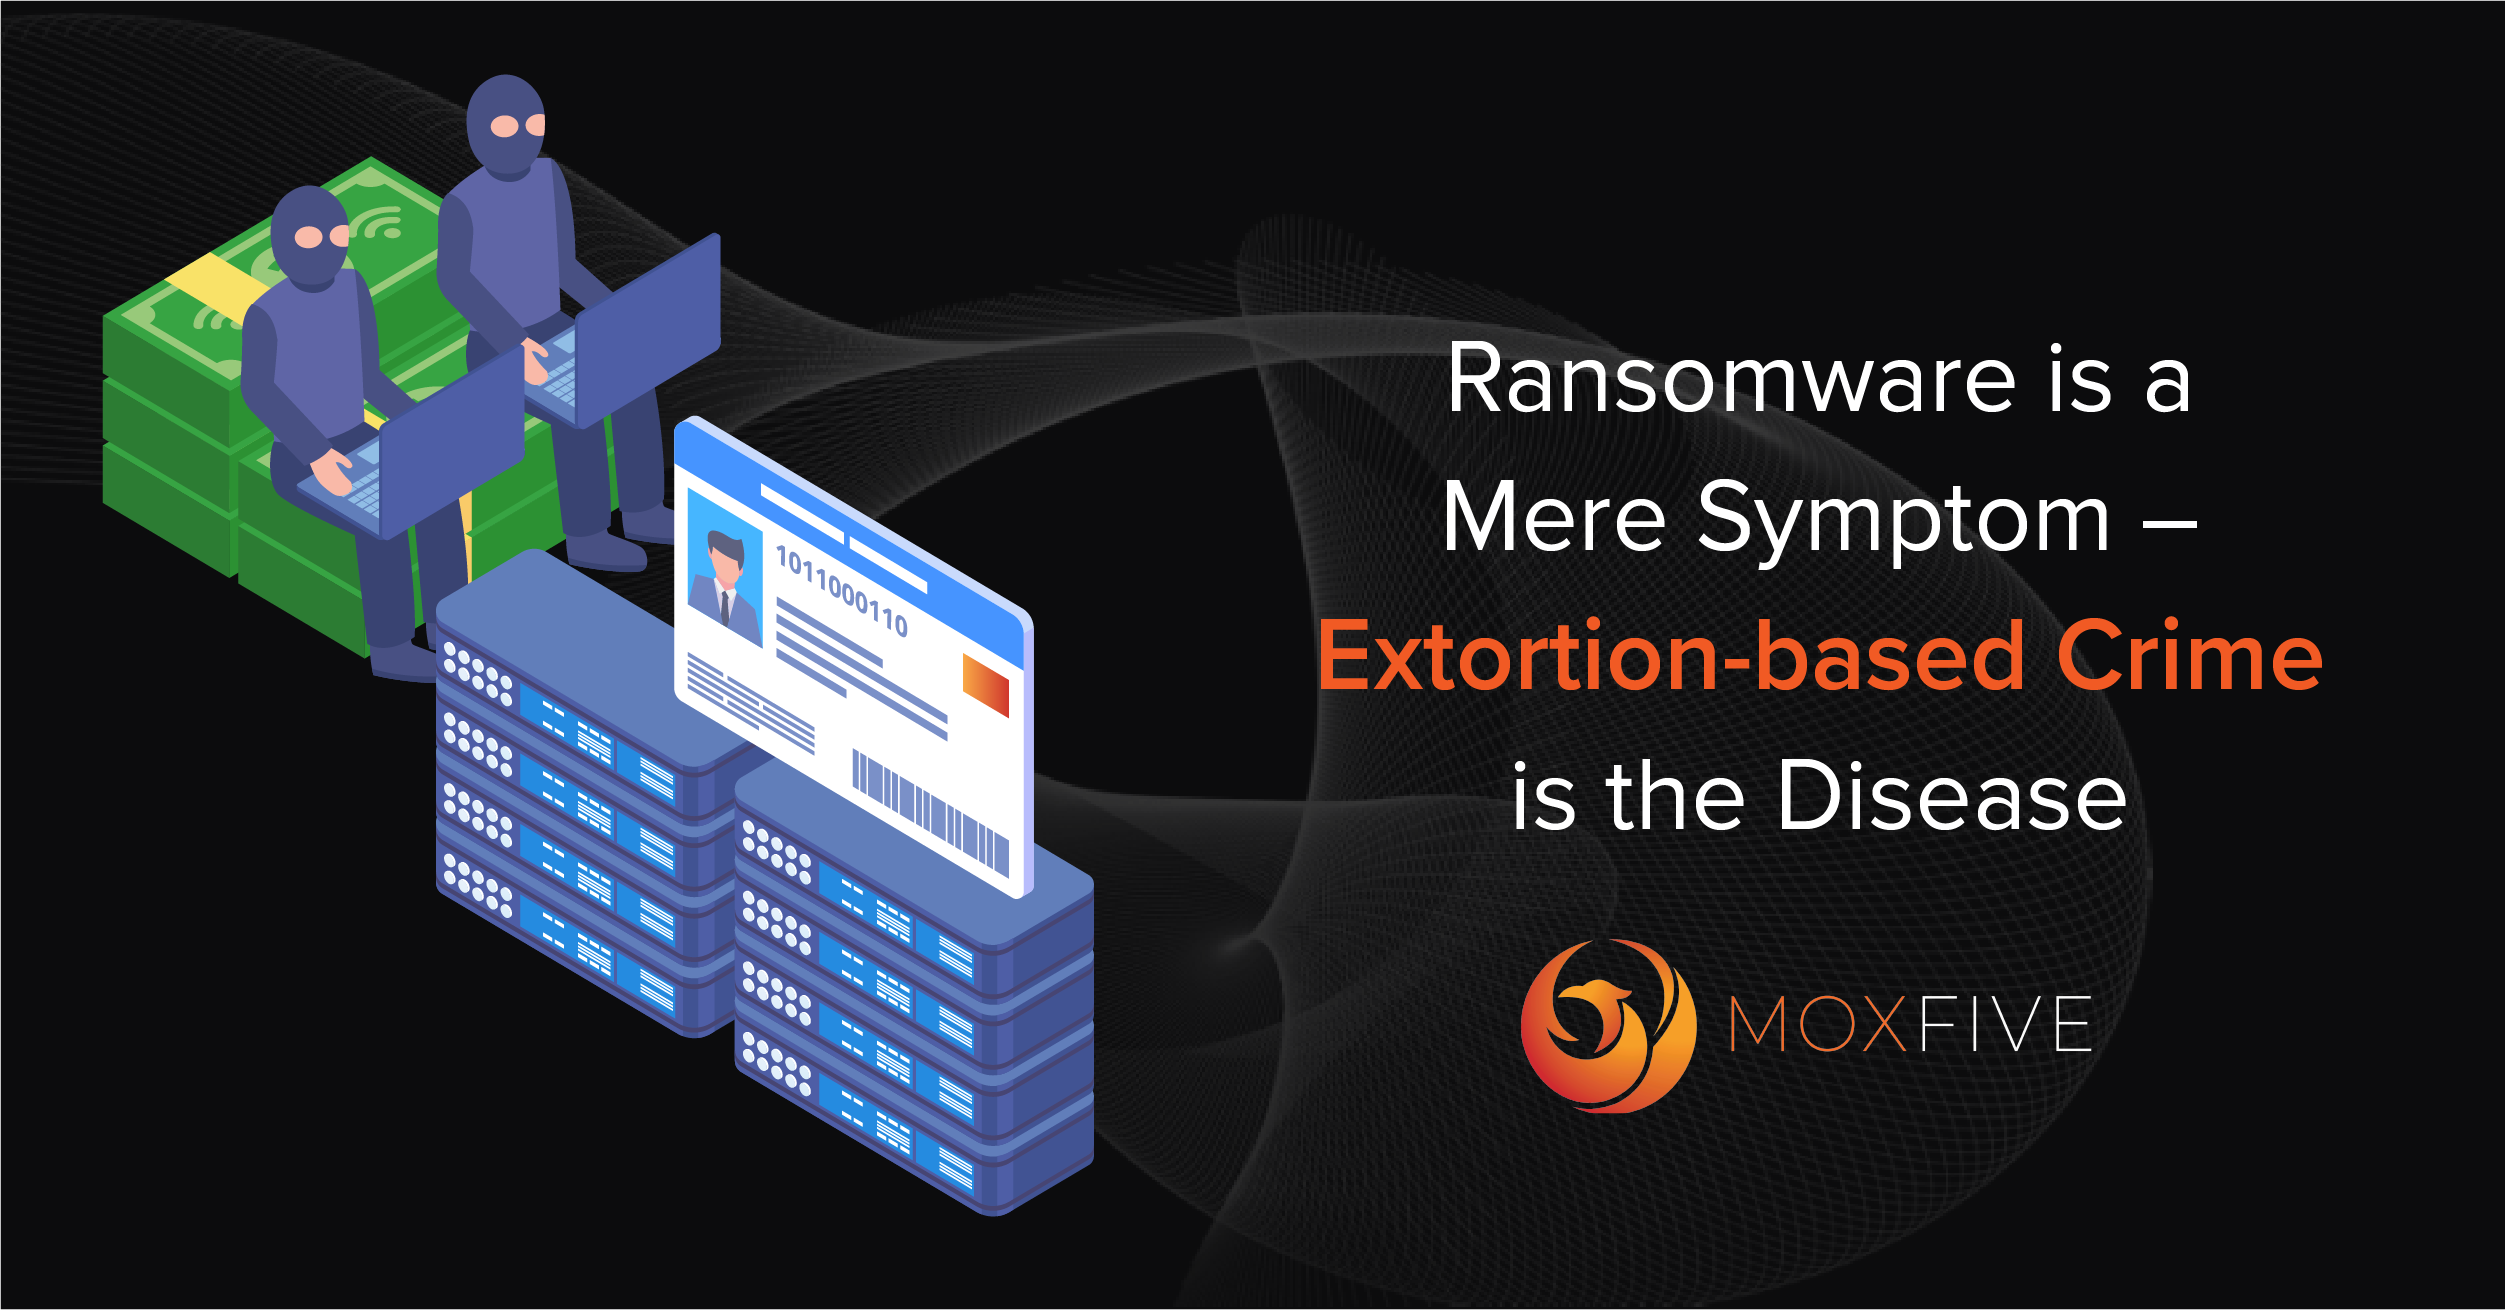 Ransomware is a Mere Symptom, Extortion-Based Crime is the Disease